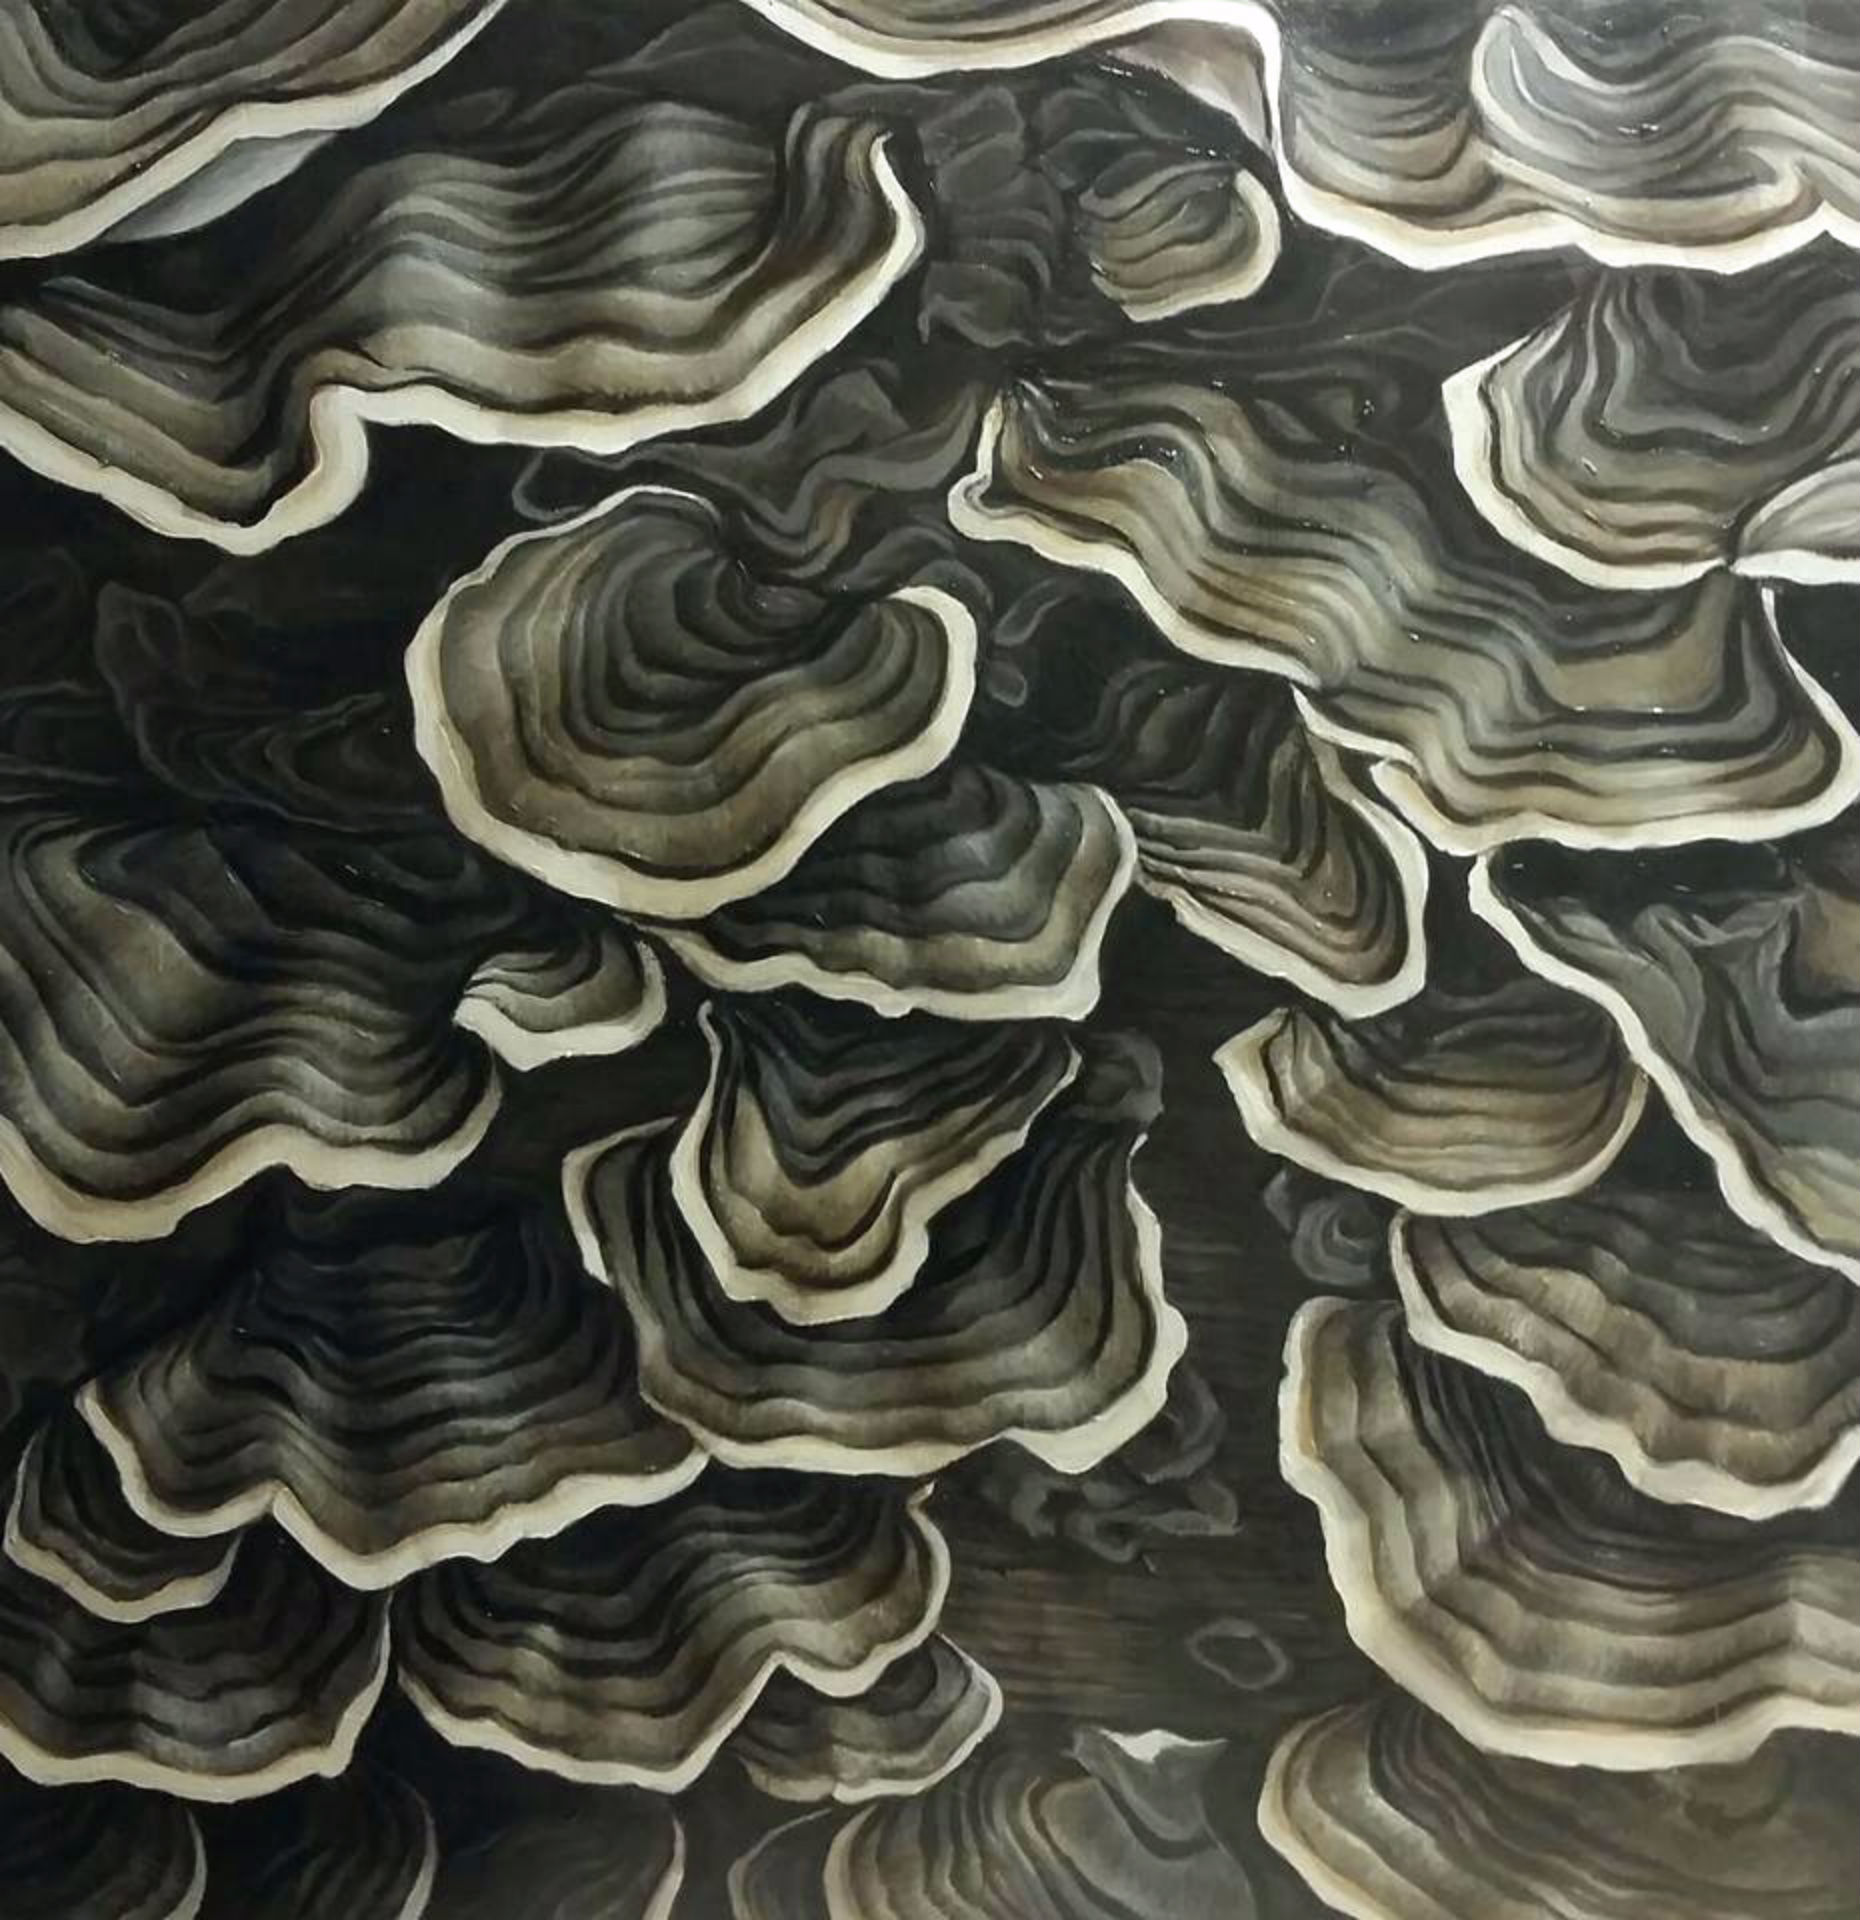 """Turkey Mushroom"" by Devan Horton, 24 x 24in, oil on panel (2017), $800 